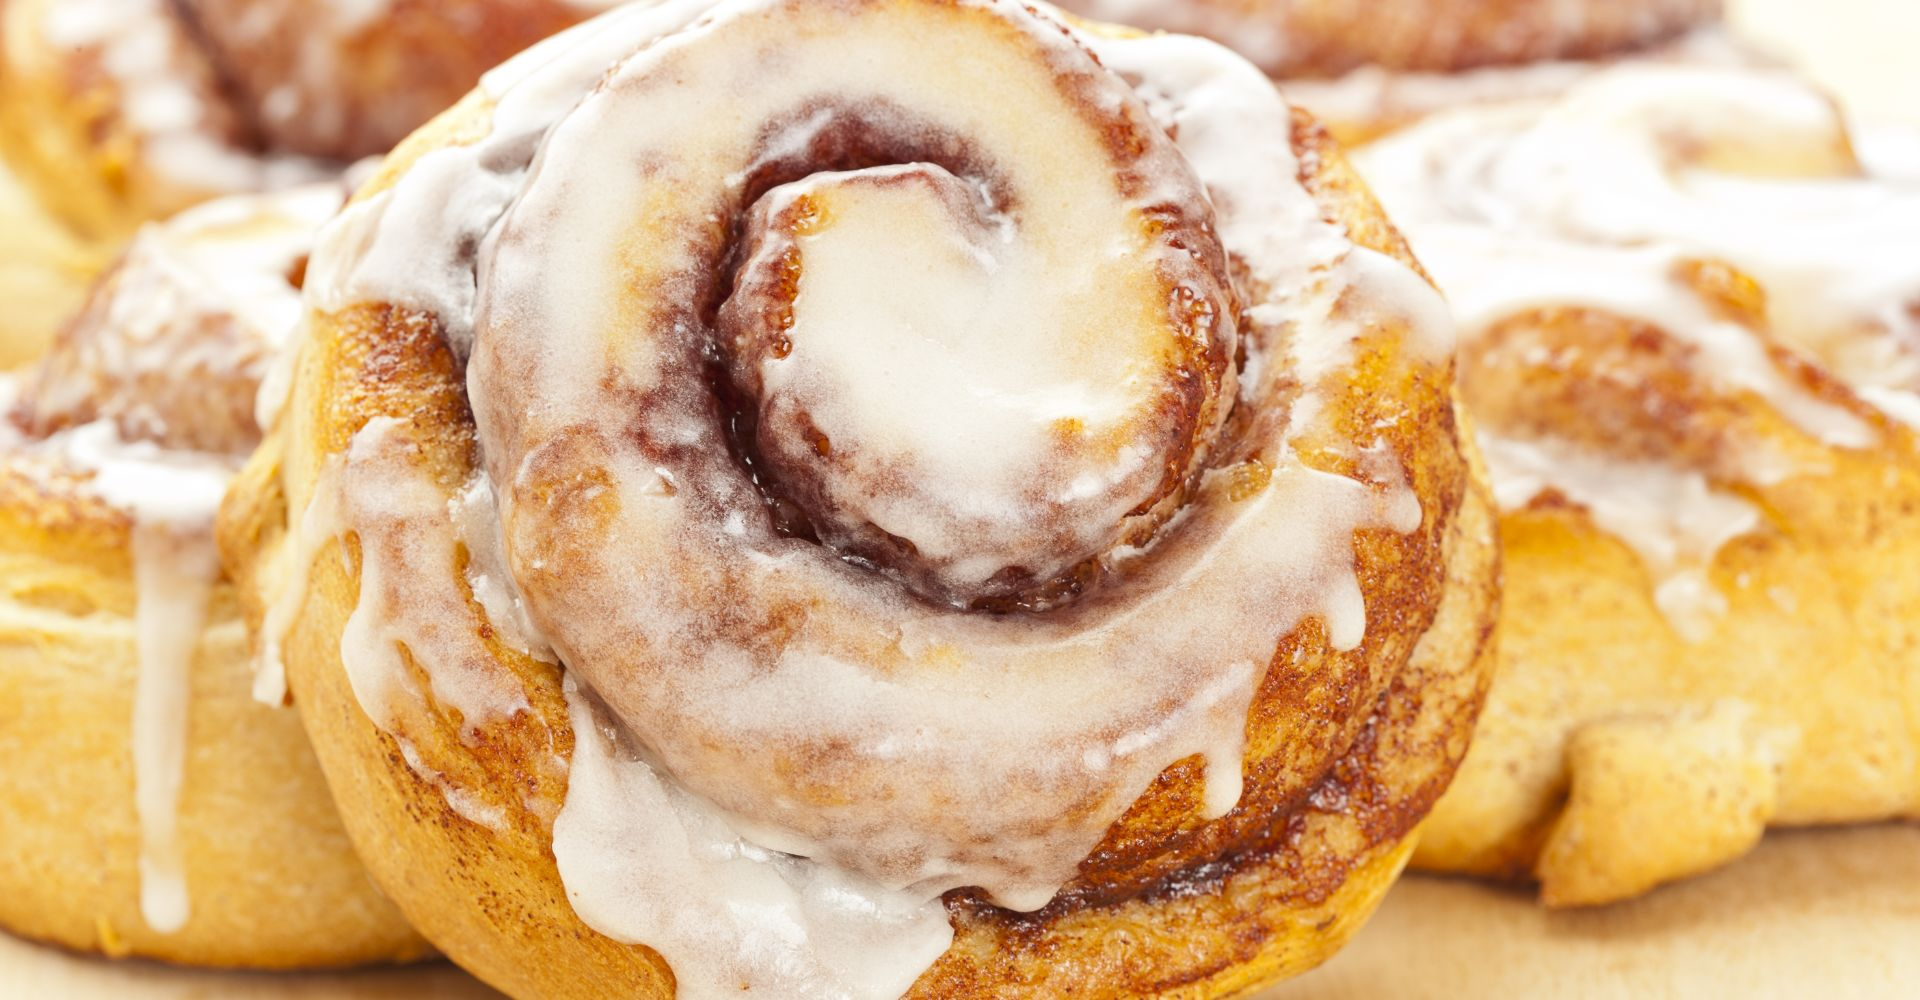 cinnamon rolls with icing on a plate